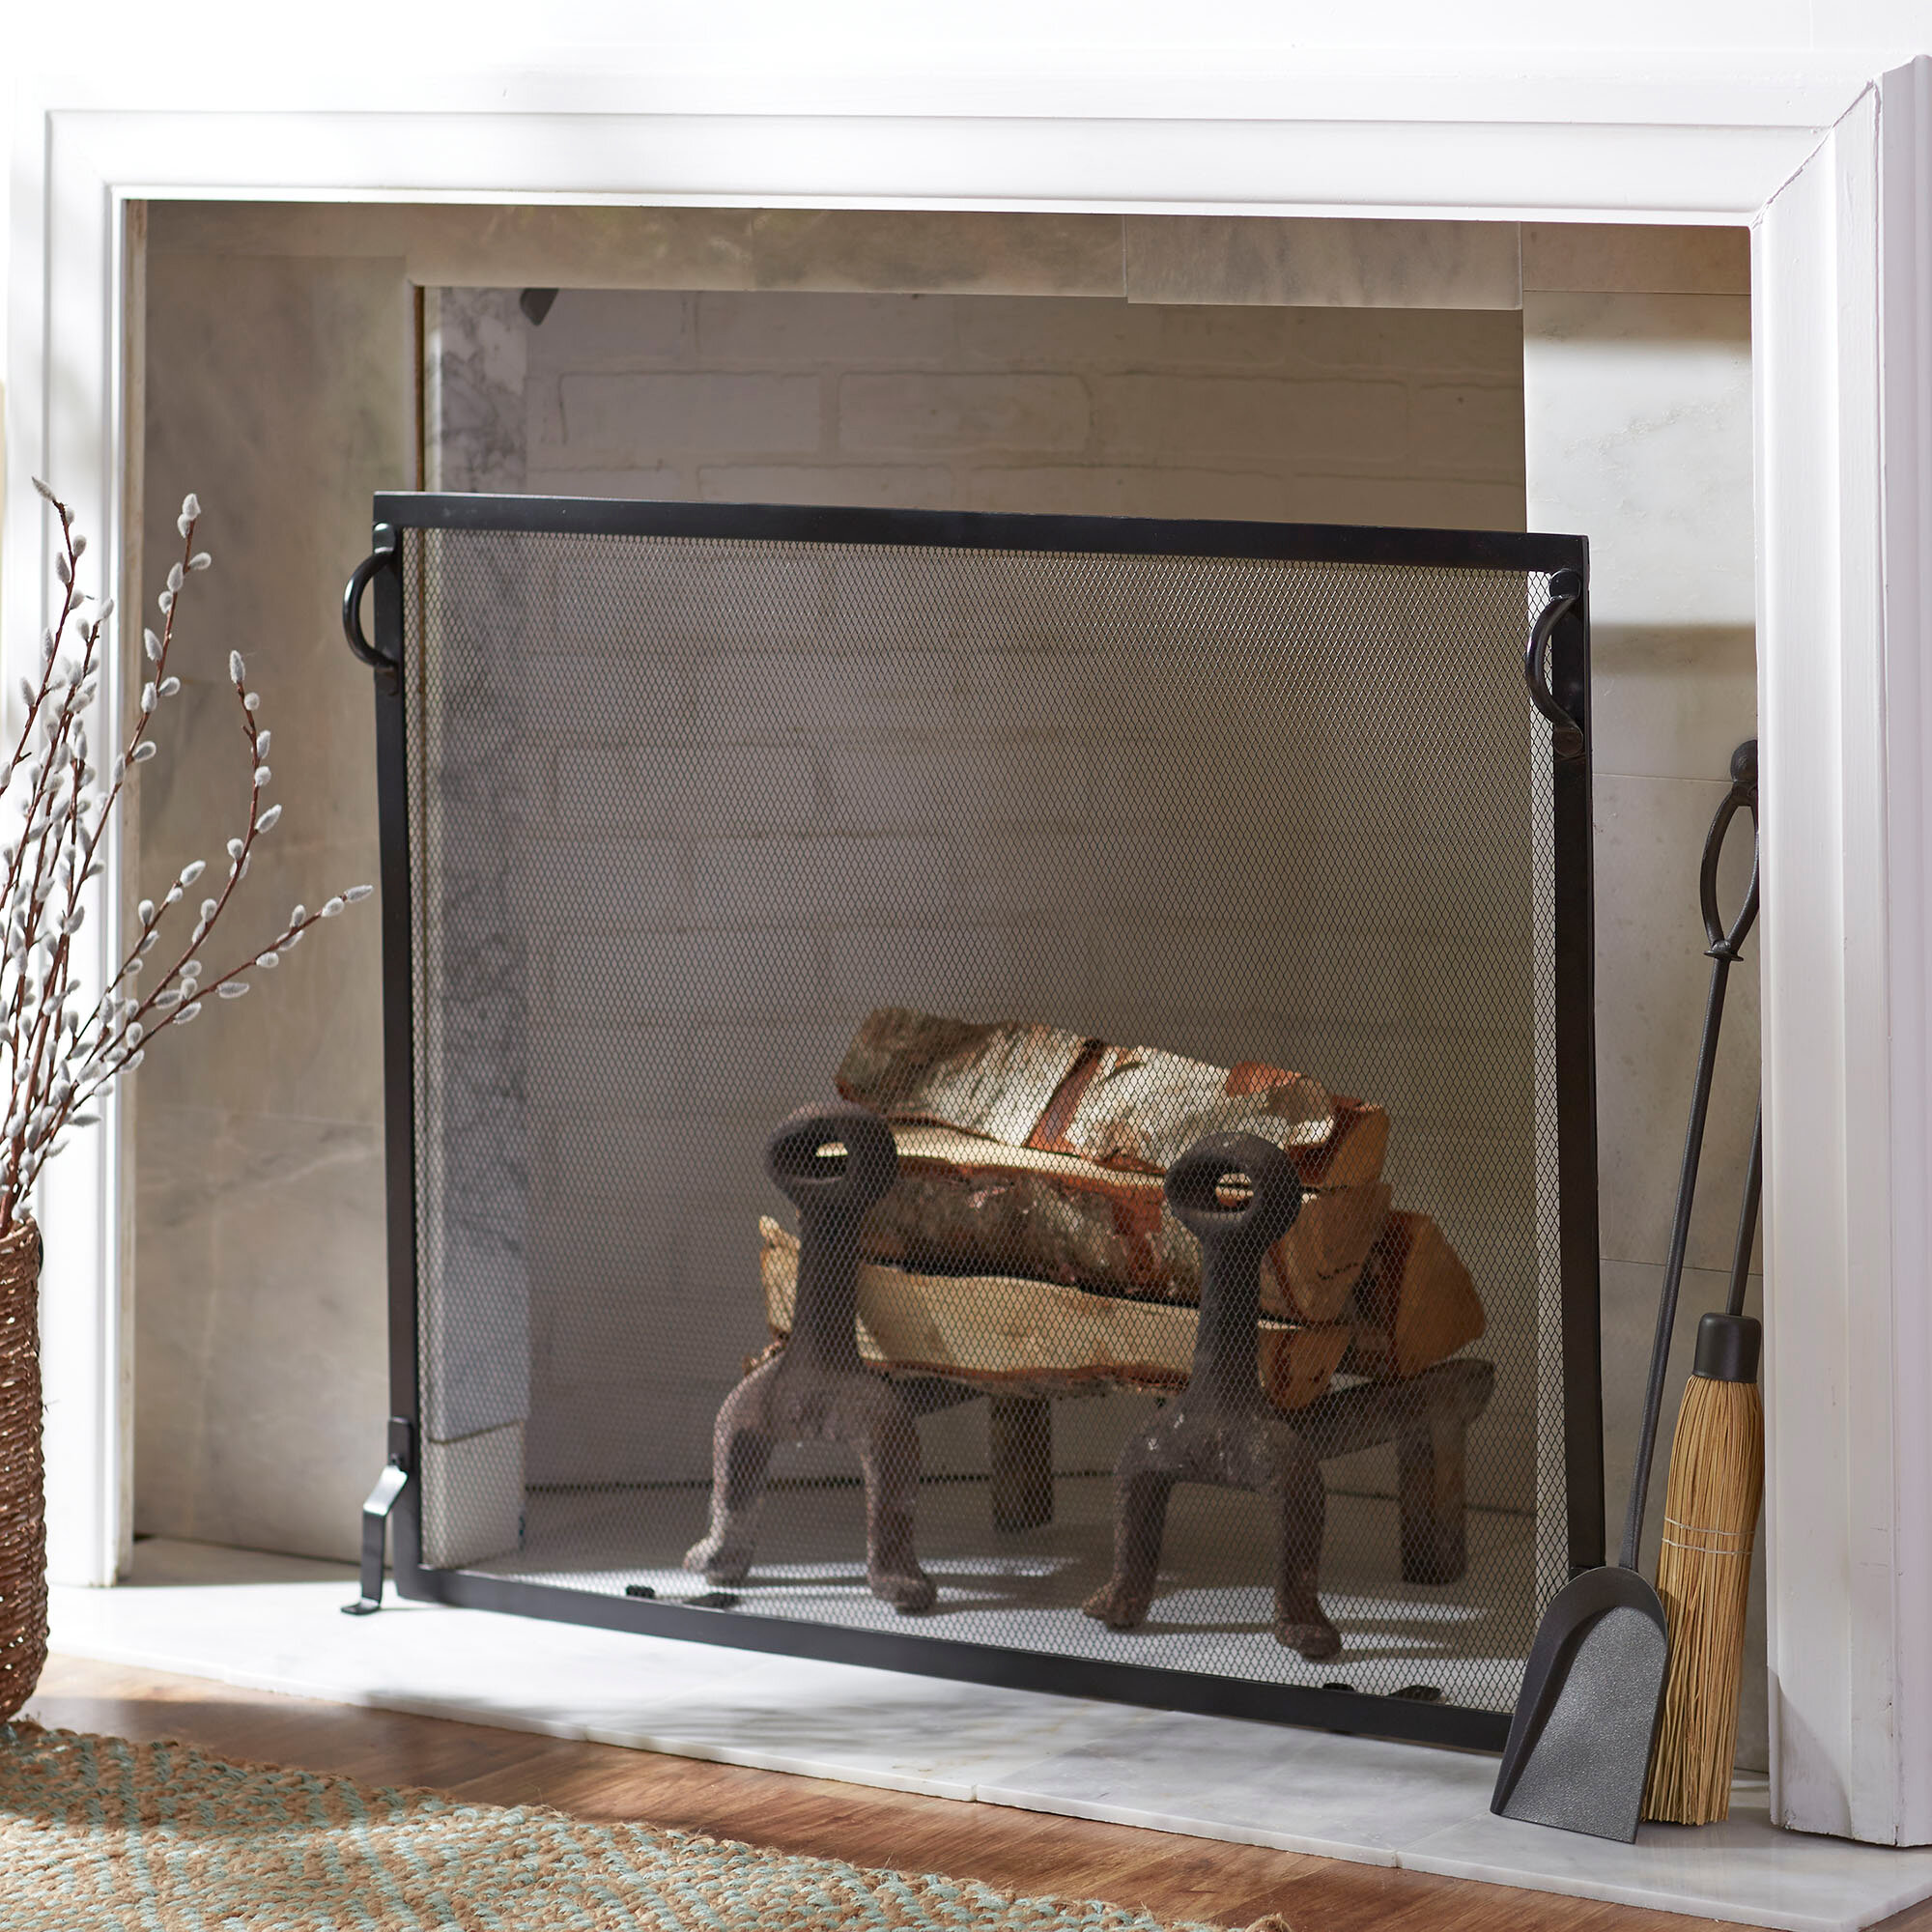 fireplace ventless regal p insert flame electric curved screen inch heater